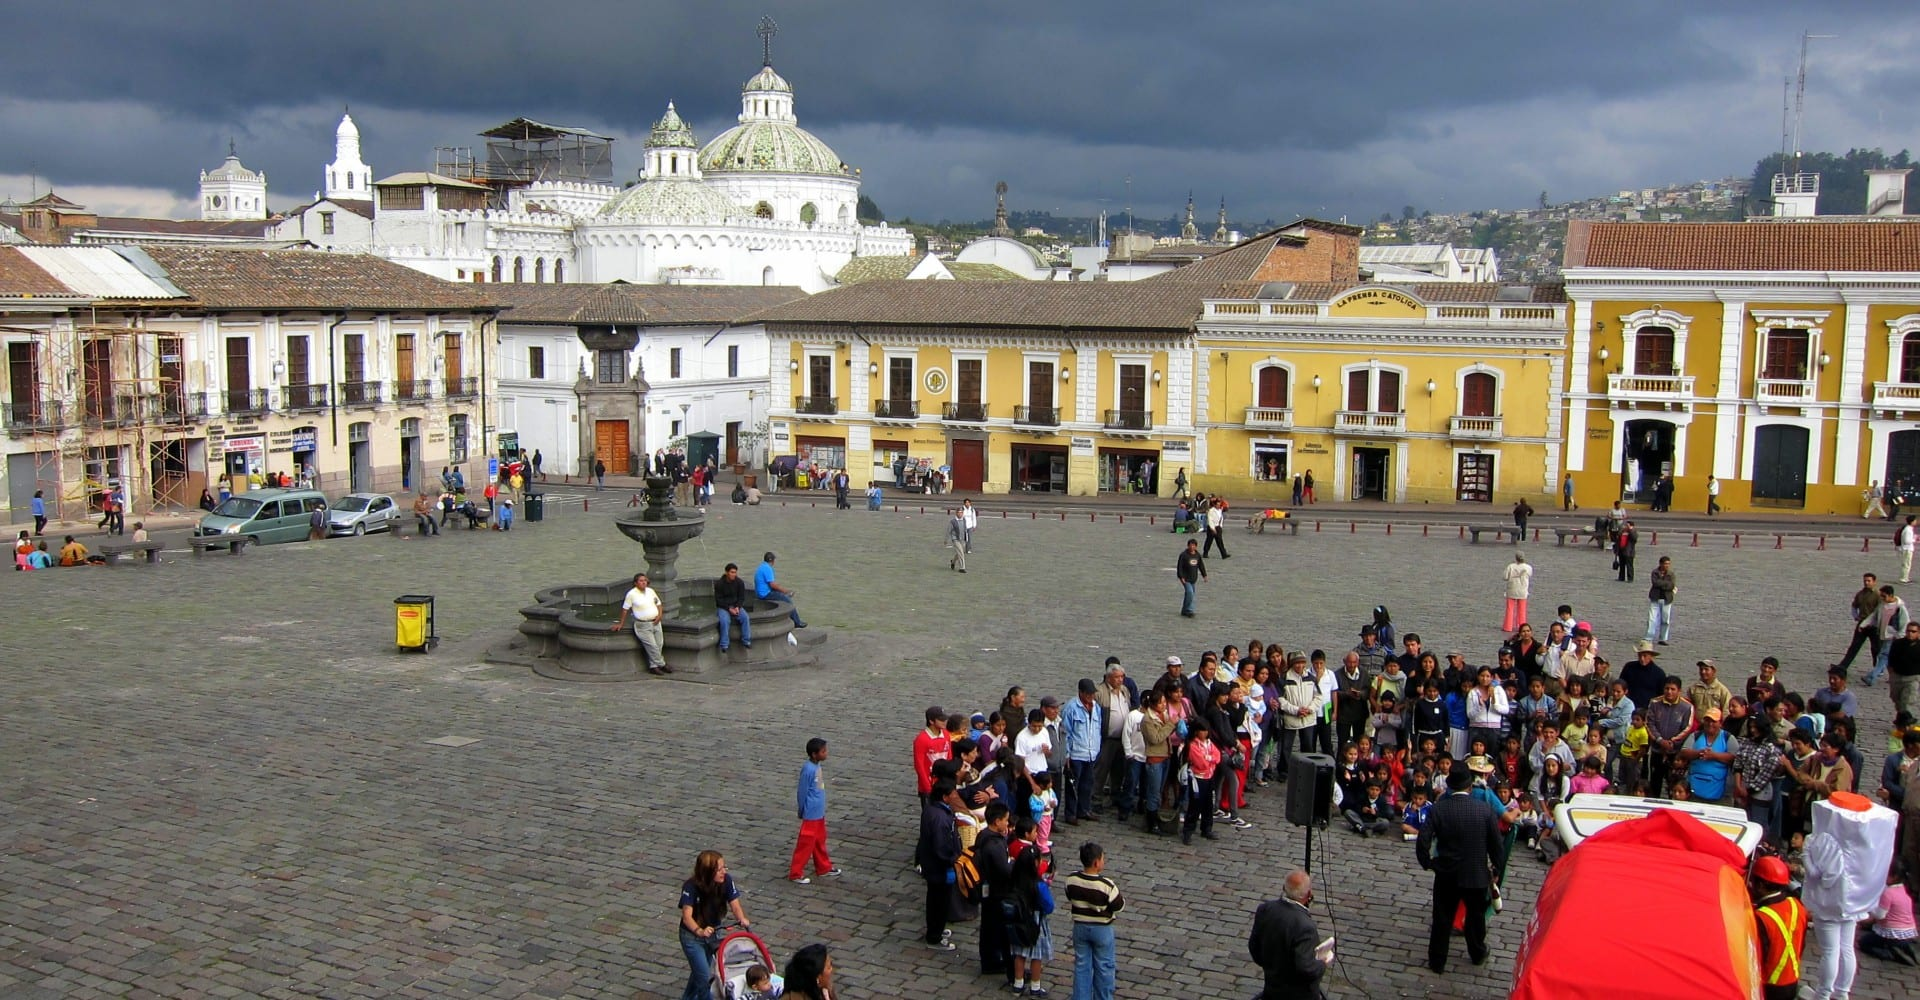 Photoessay: The Quito that I Love